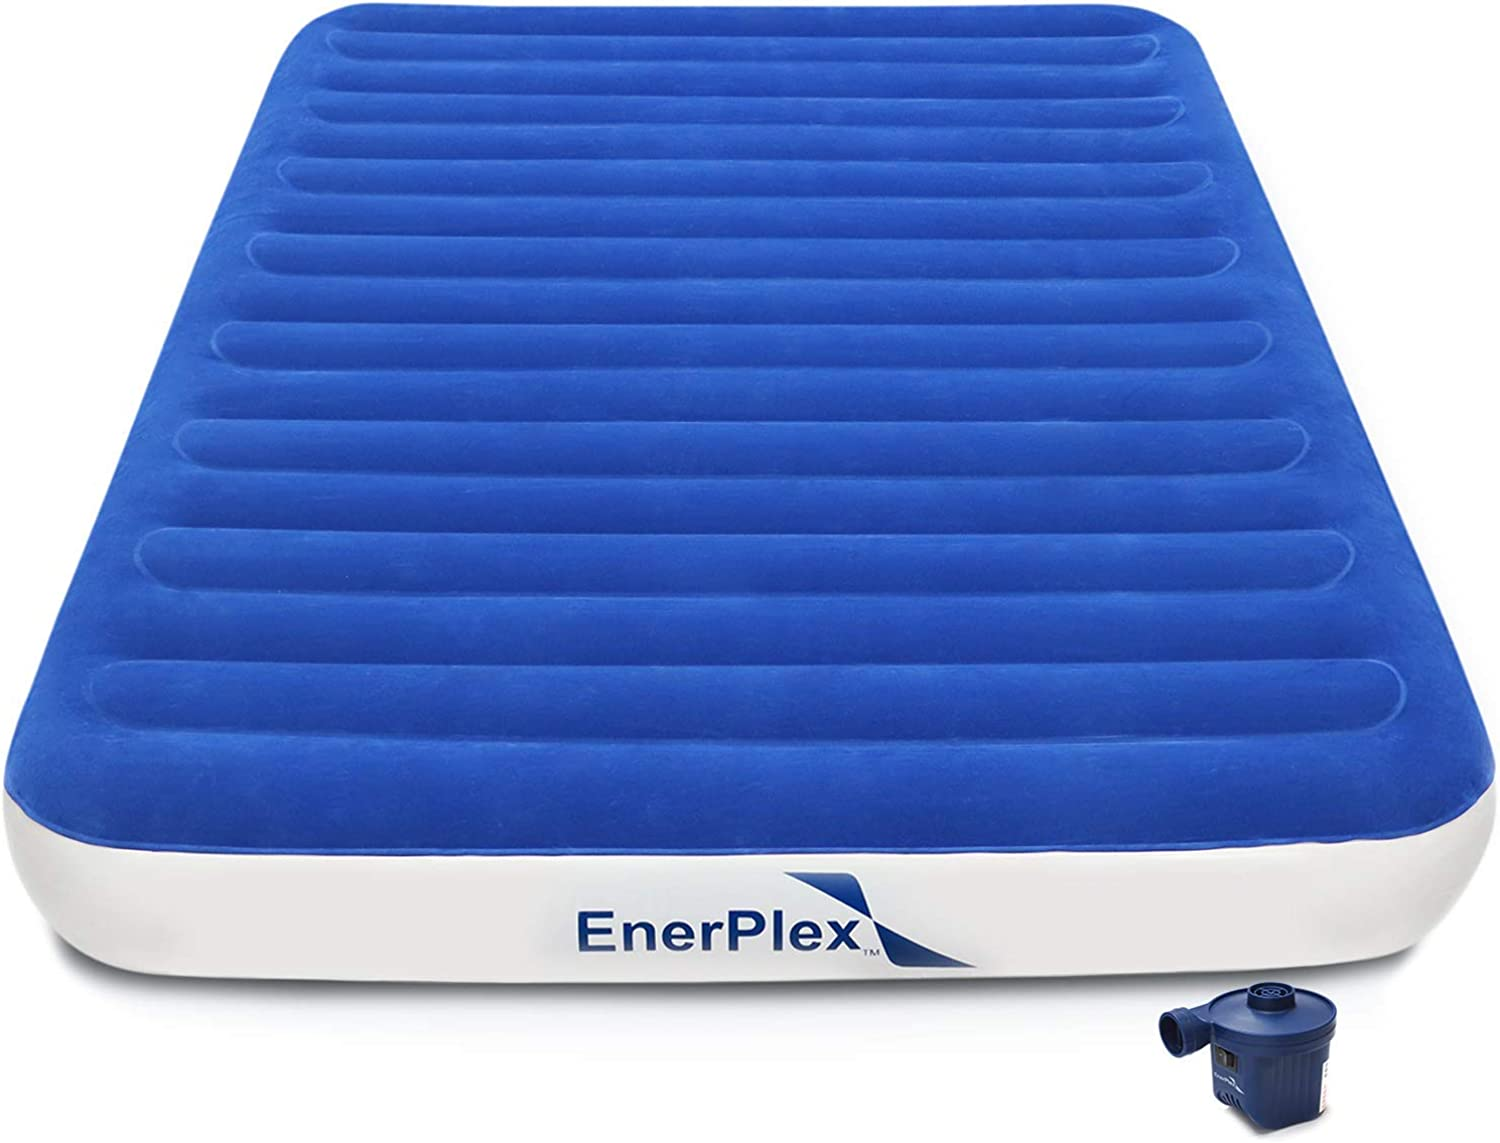 EnerPlex 2019 Never Leak Luxury Queen Size Air Mattress Camping Queen Airbed with High Speed Wireless Pump Single High Inflatable Blow Up Bed for Home Camping Travel 2-Year Warranty